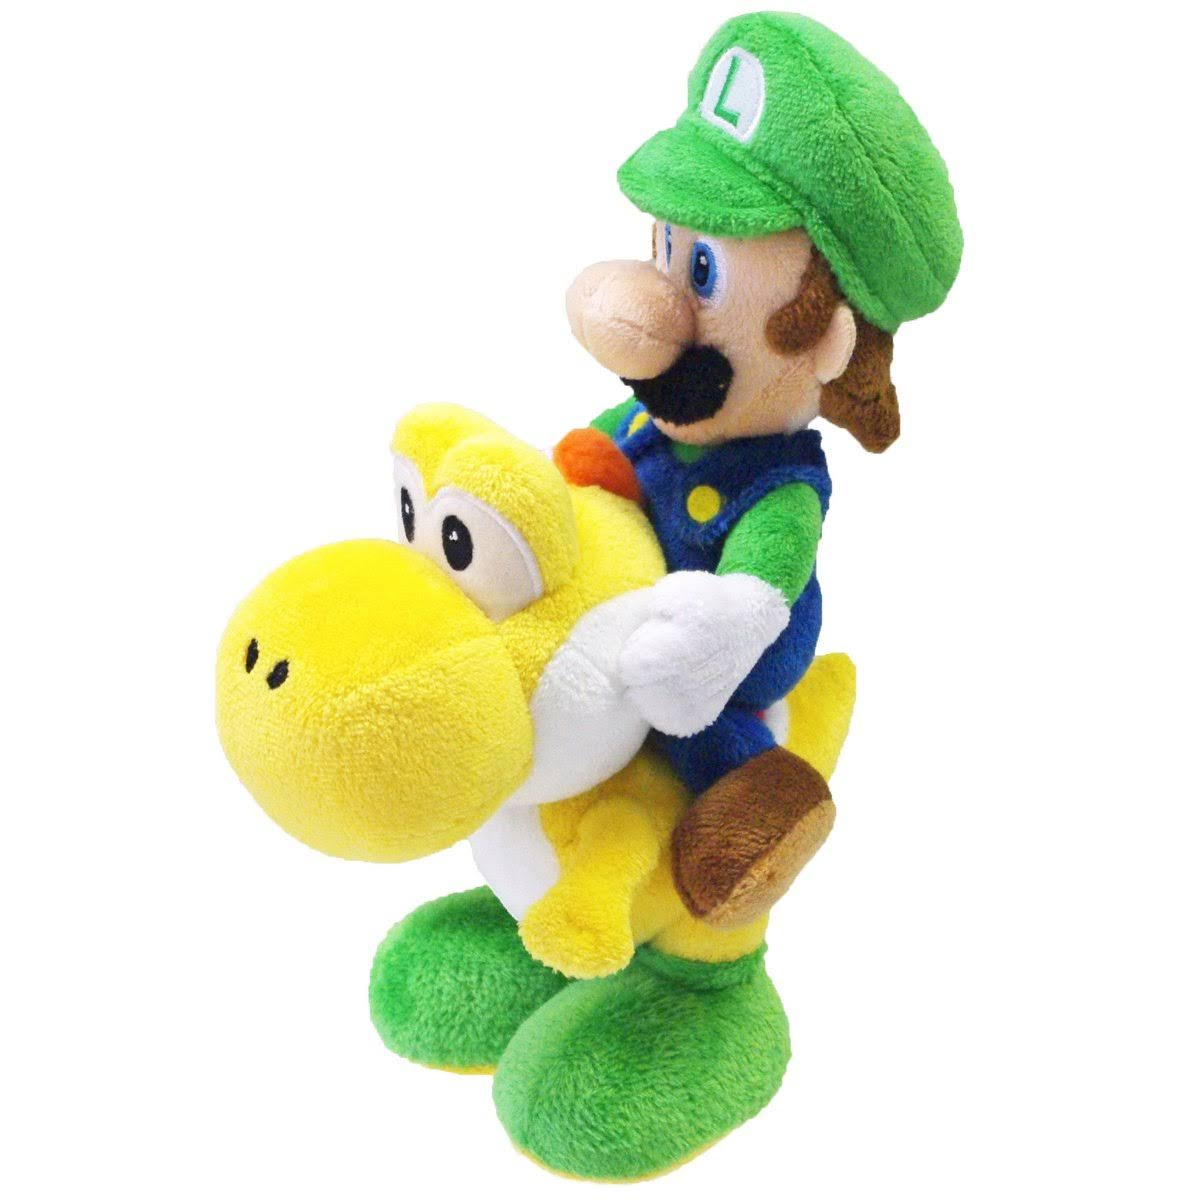 Super Mario Bros Luigi Riding Yoshi Plush Toy - 8""